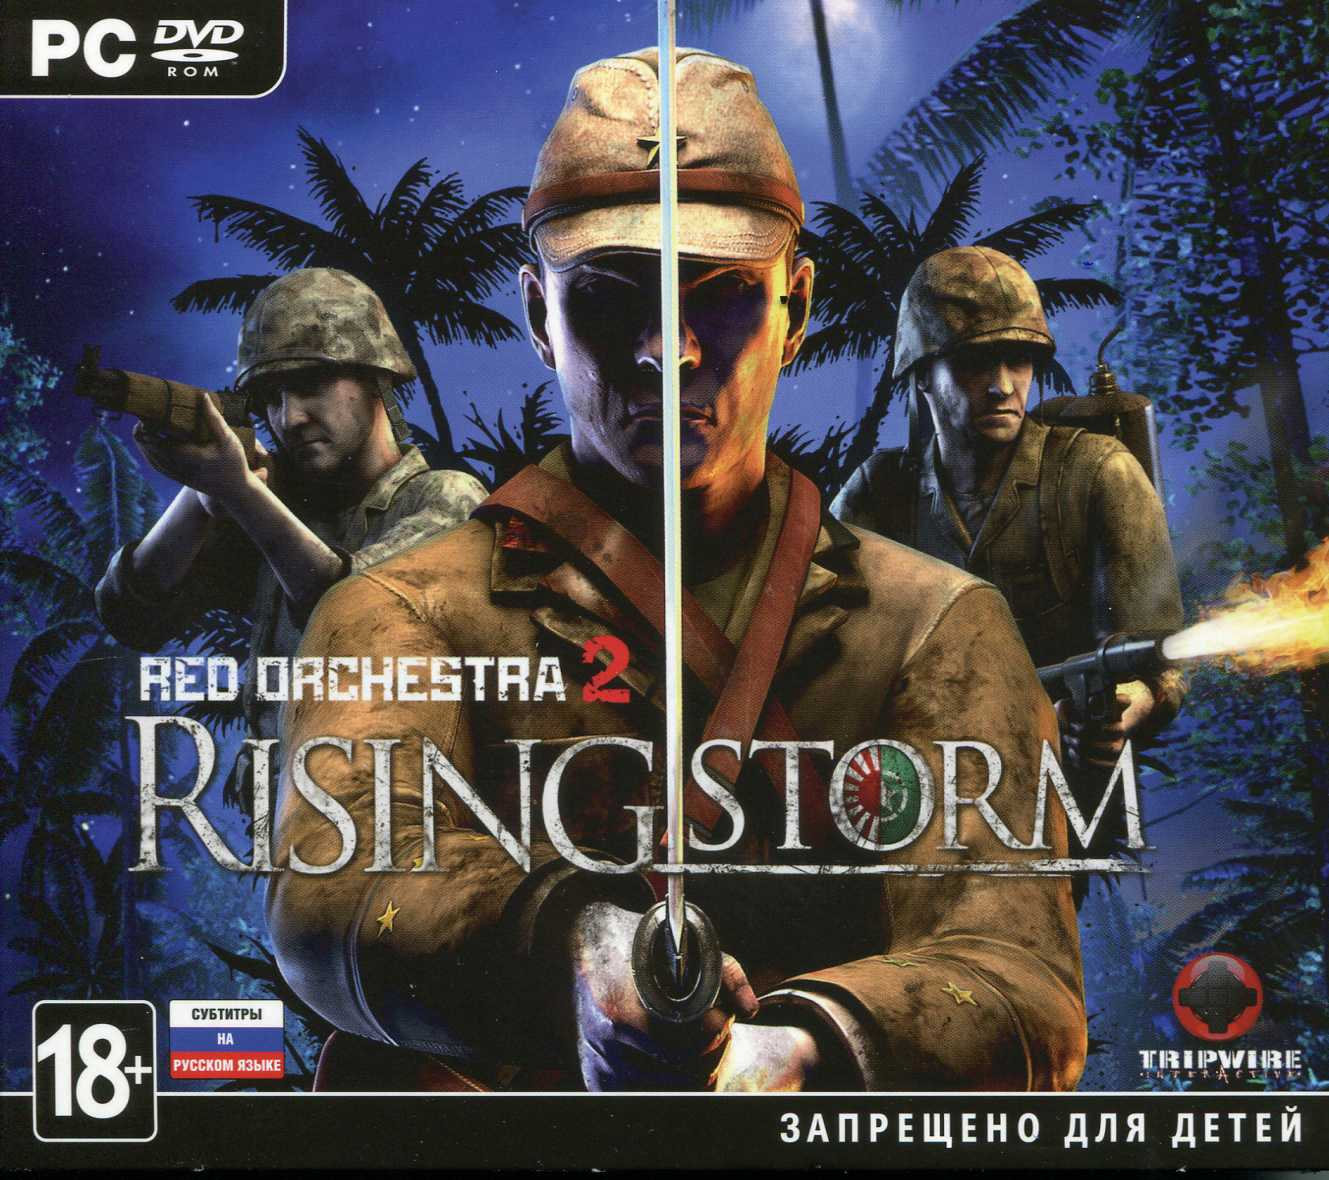 Red Orchestra 2: Rising Storm (KEY Steam)RU+CIS